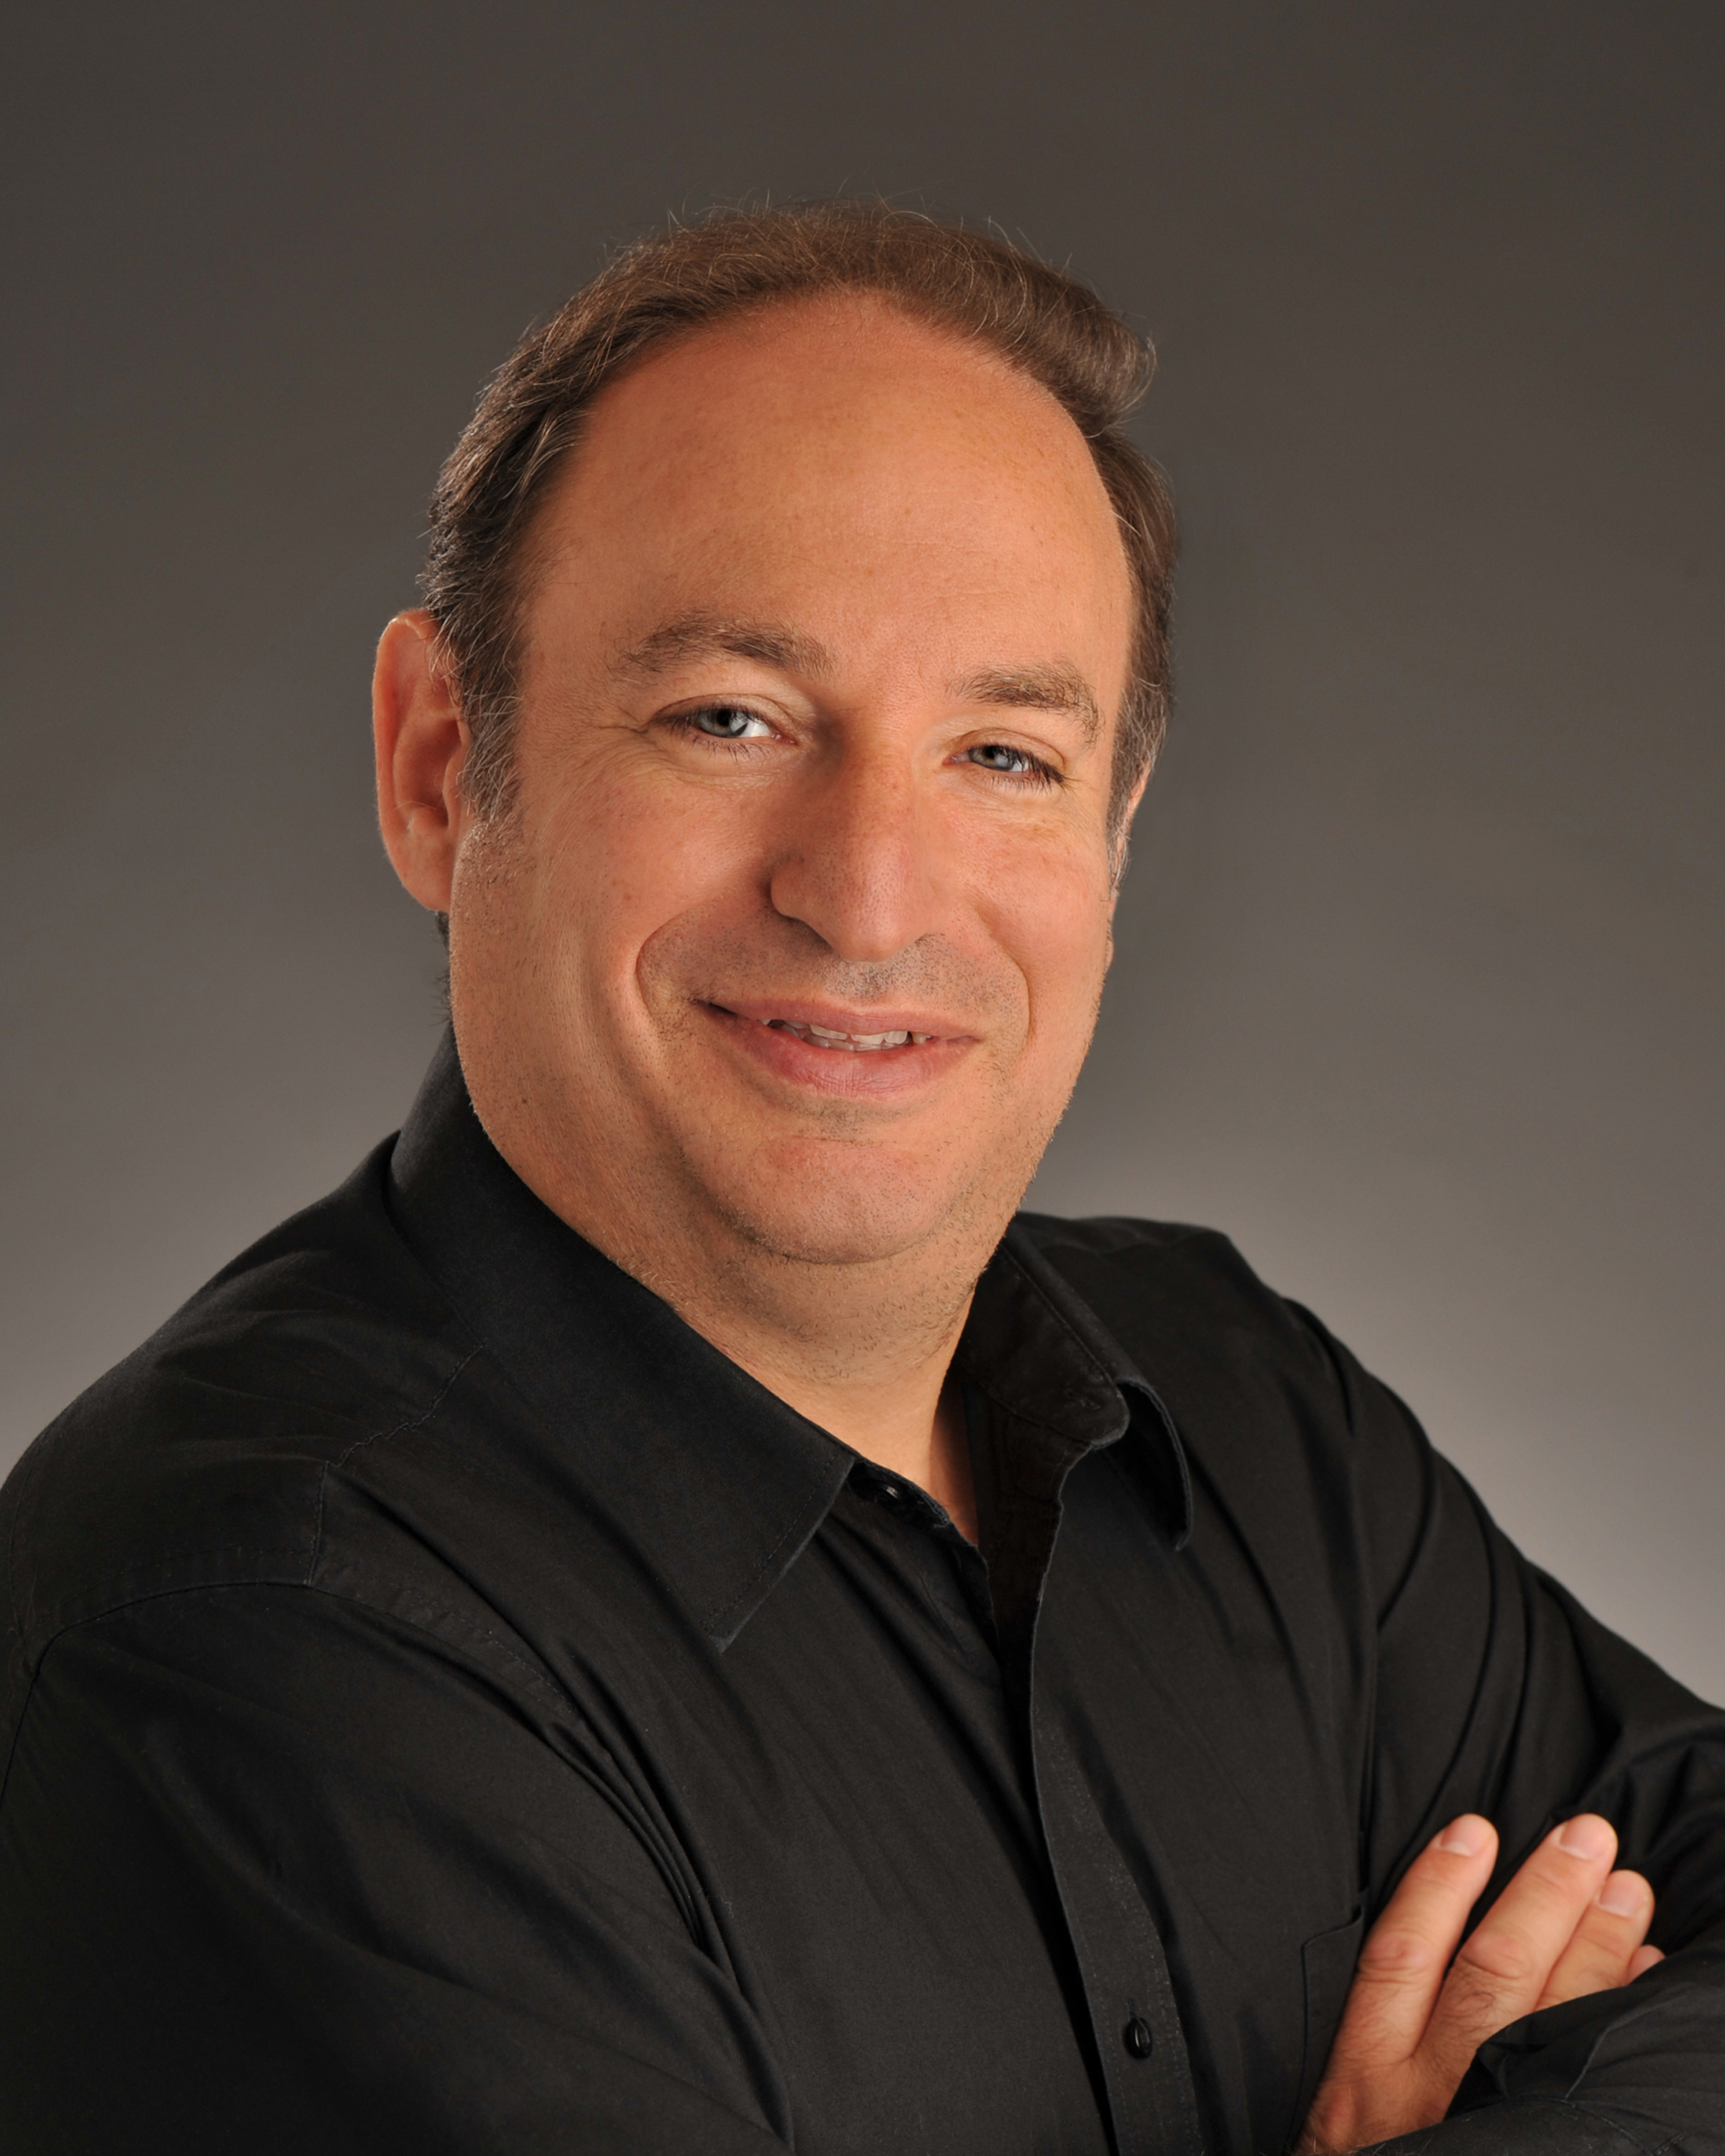 Ronnie Baras Entertains Using Top-Notch Hypnosis, Hypnotherapy, and Mentalism